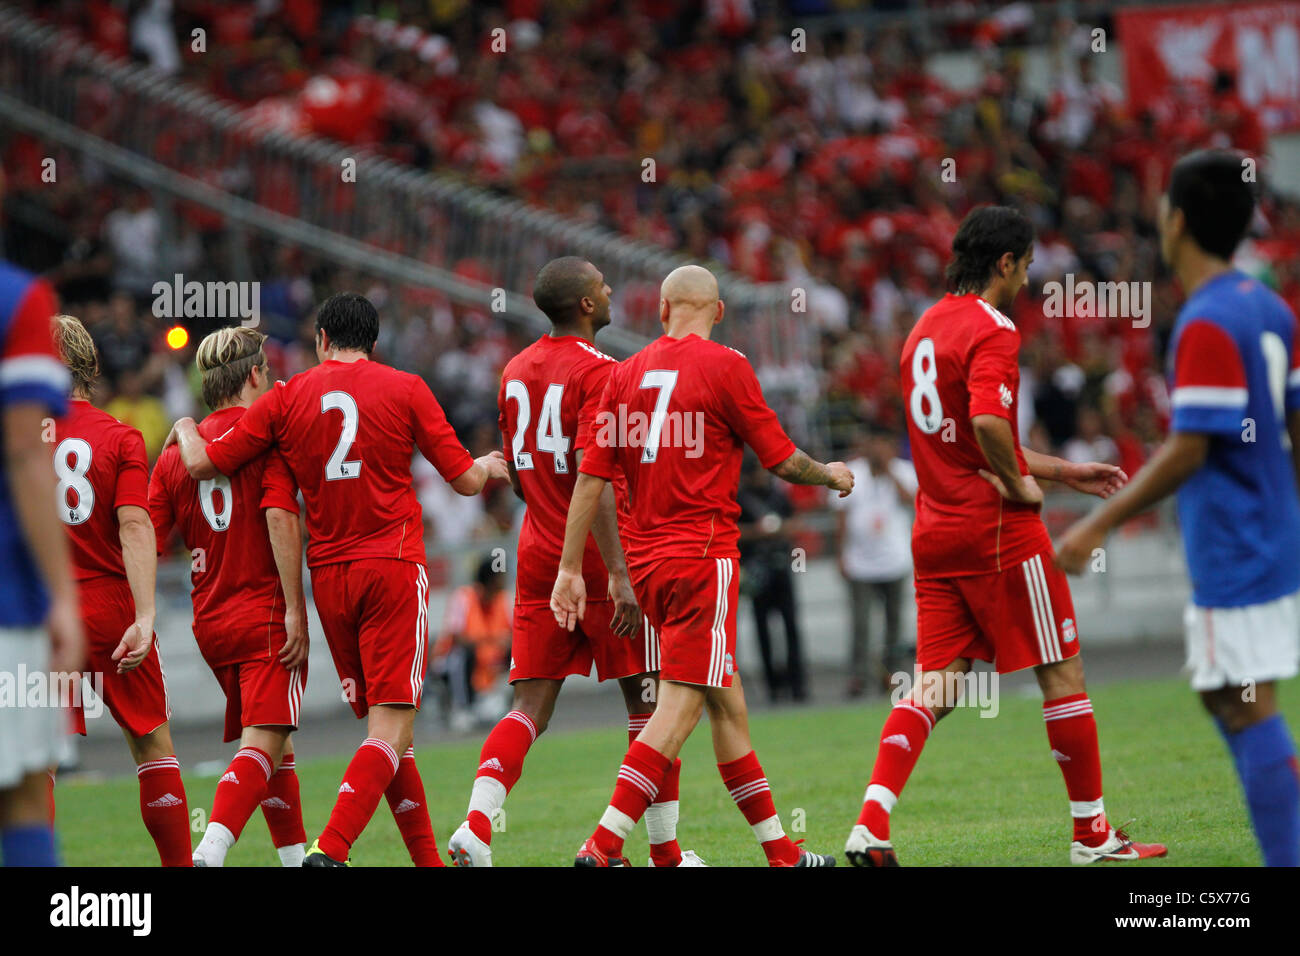 KUALA LUMPUR-JULY 16:Liverpool football club players celebrate during a friendly match against Malaysia XI on July - Stock Image